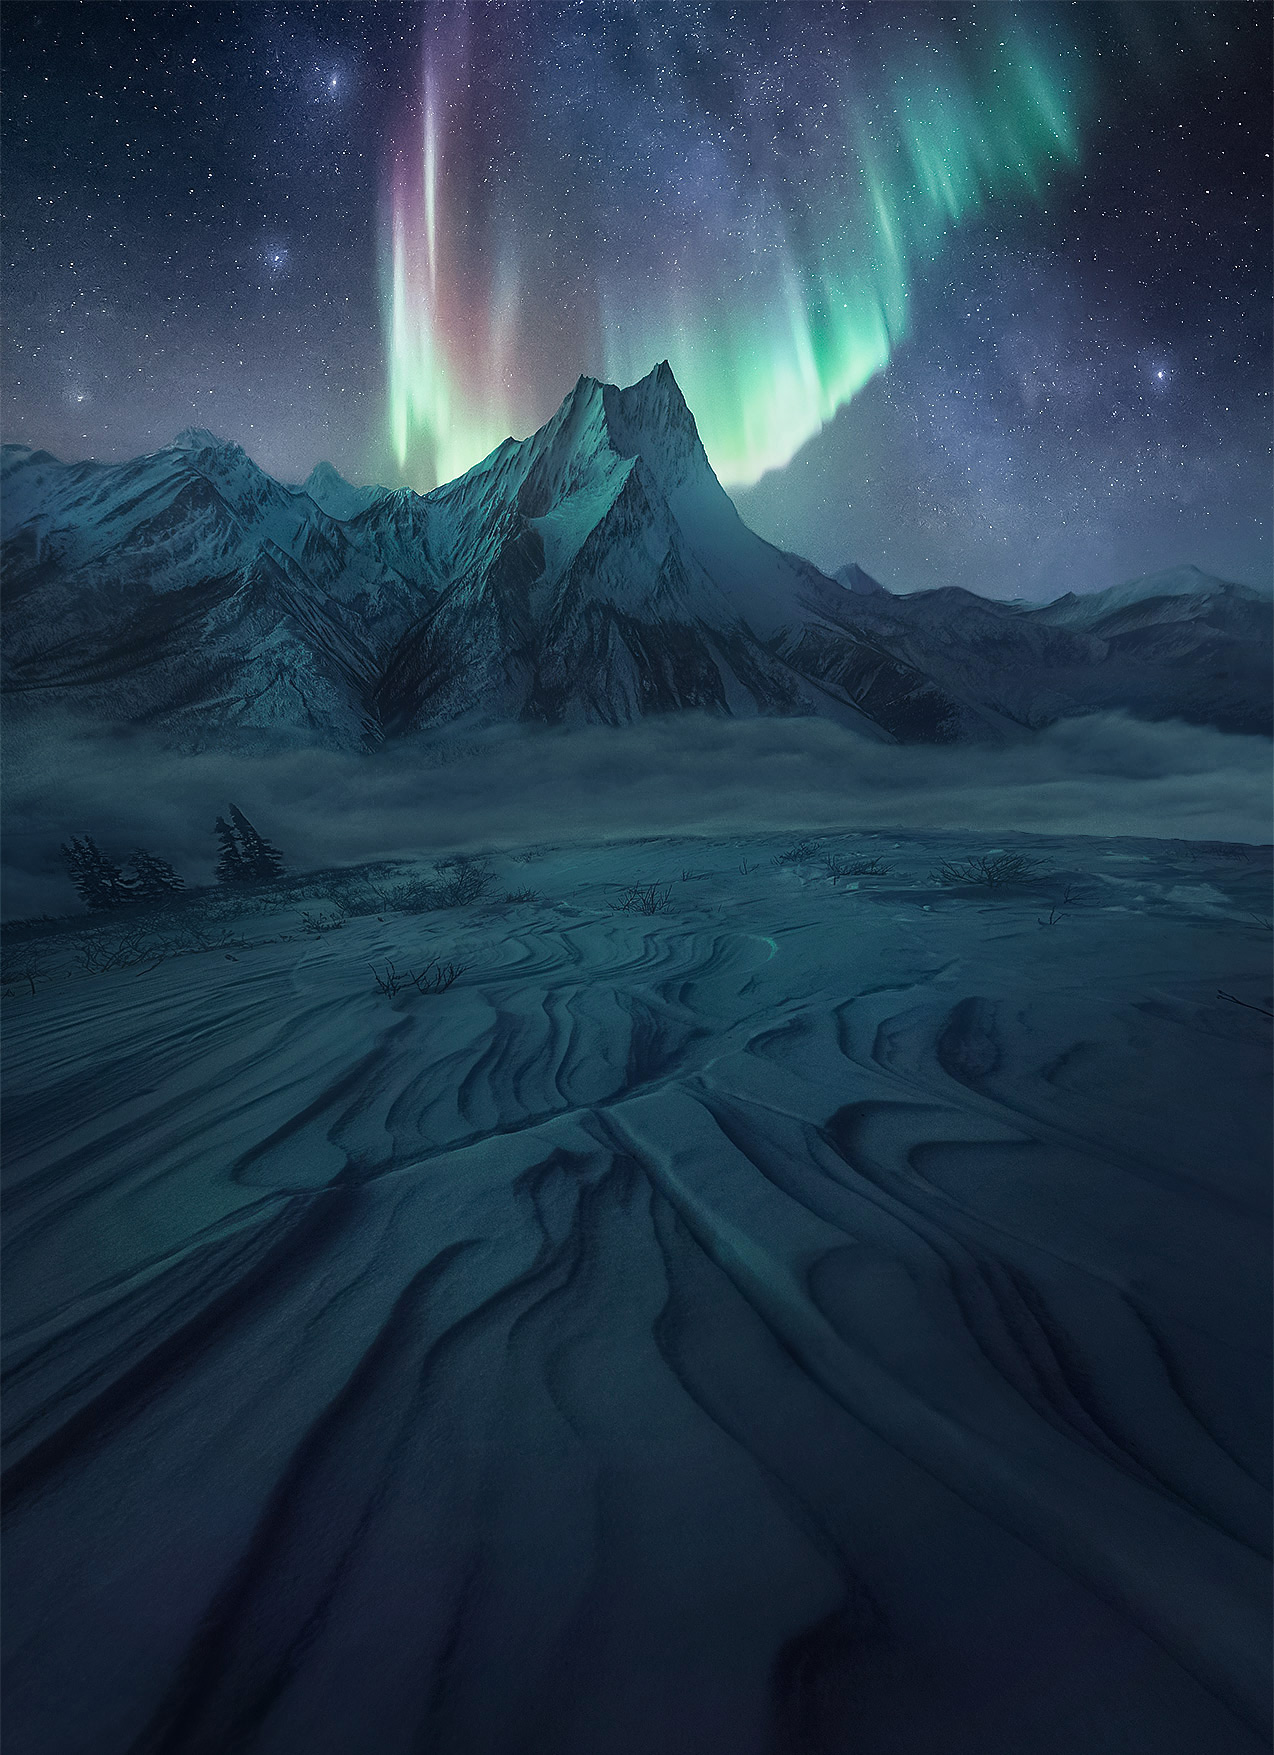 High peaks of Arctic Alaska depicted in faint moonlight below the aurora and Northern band of the Milky Way